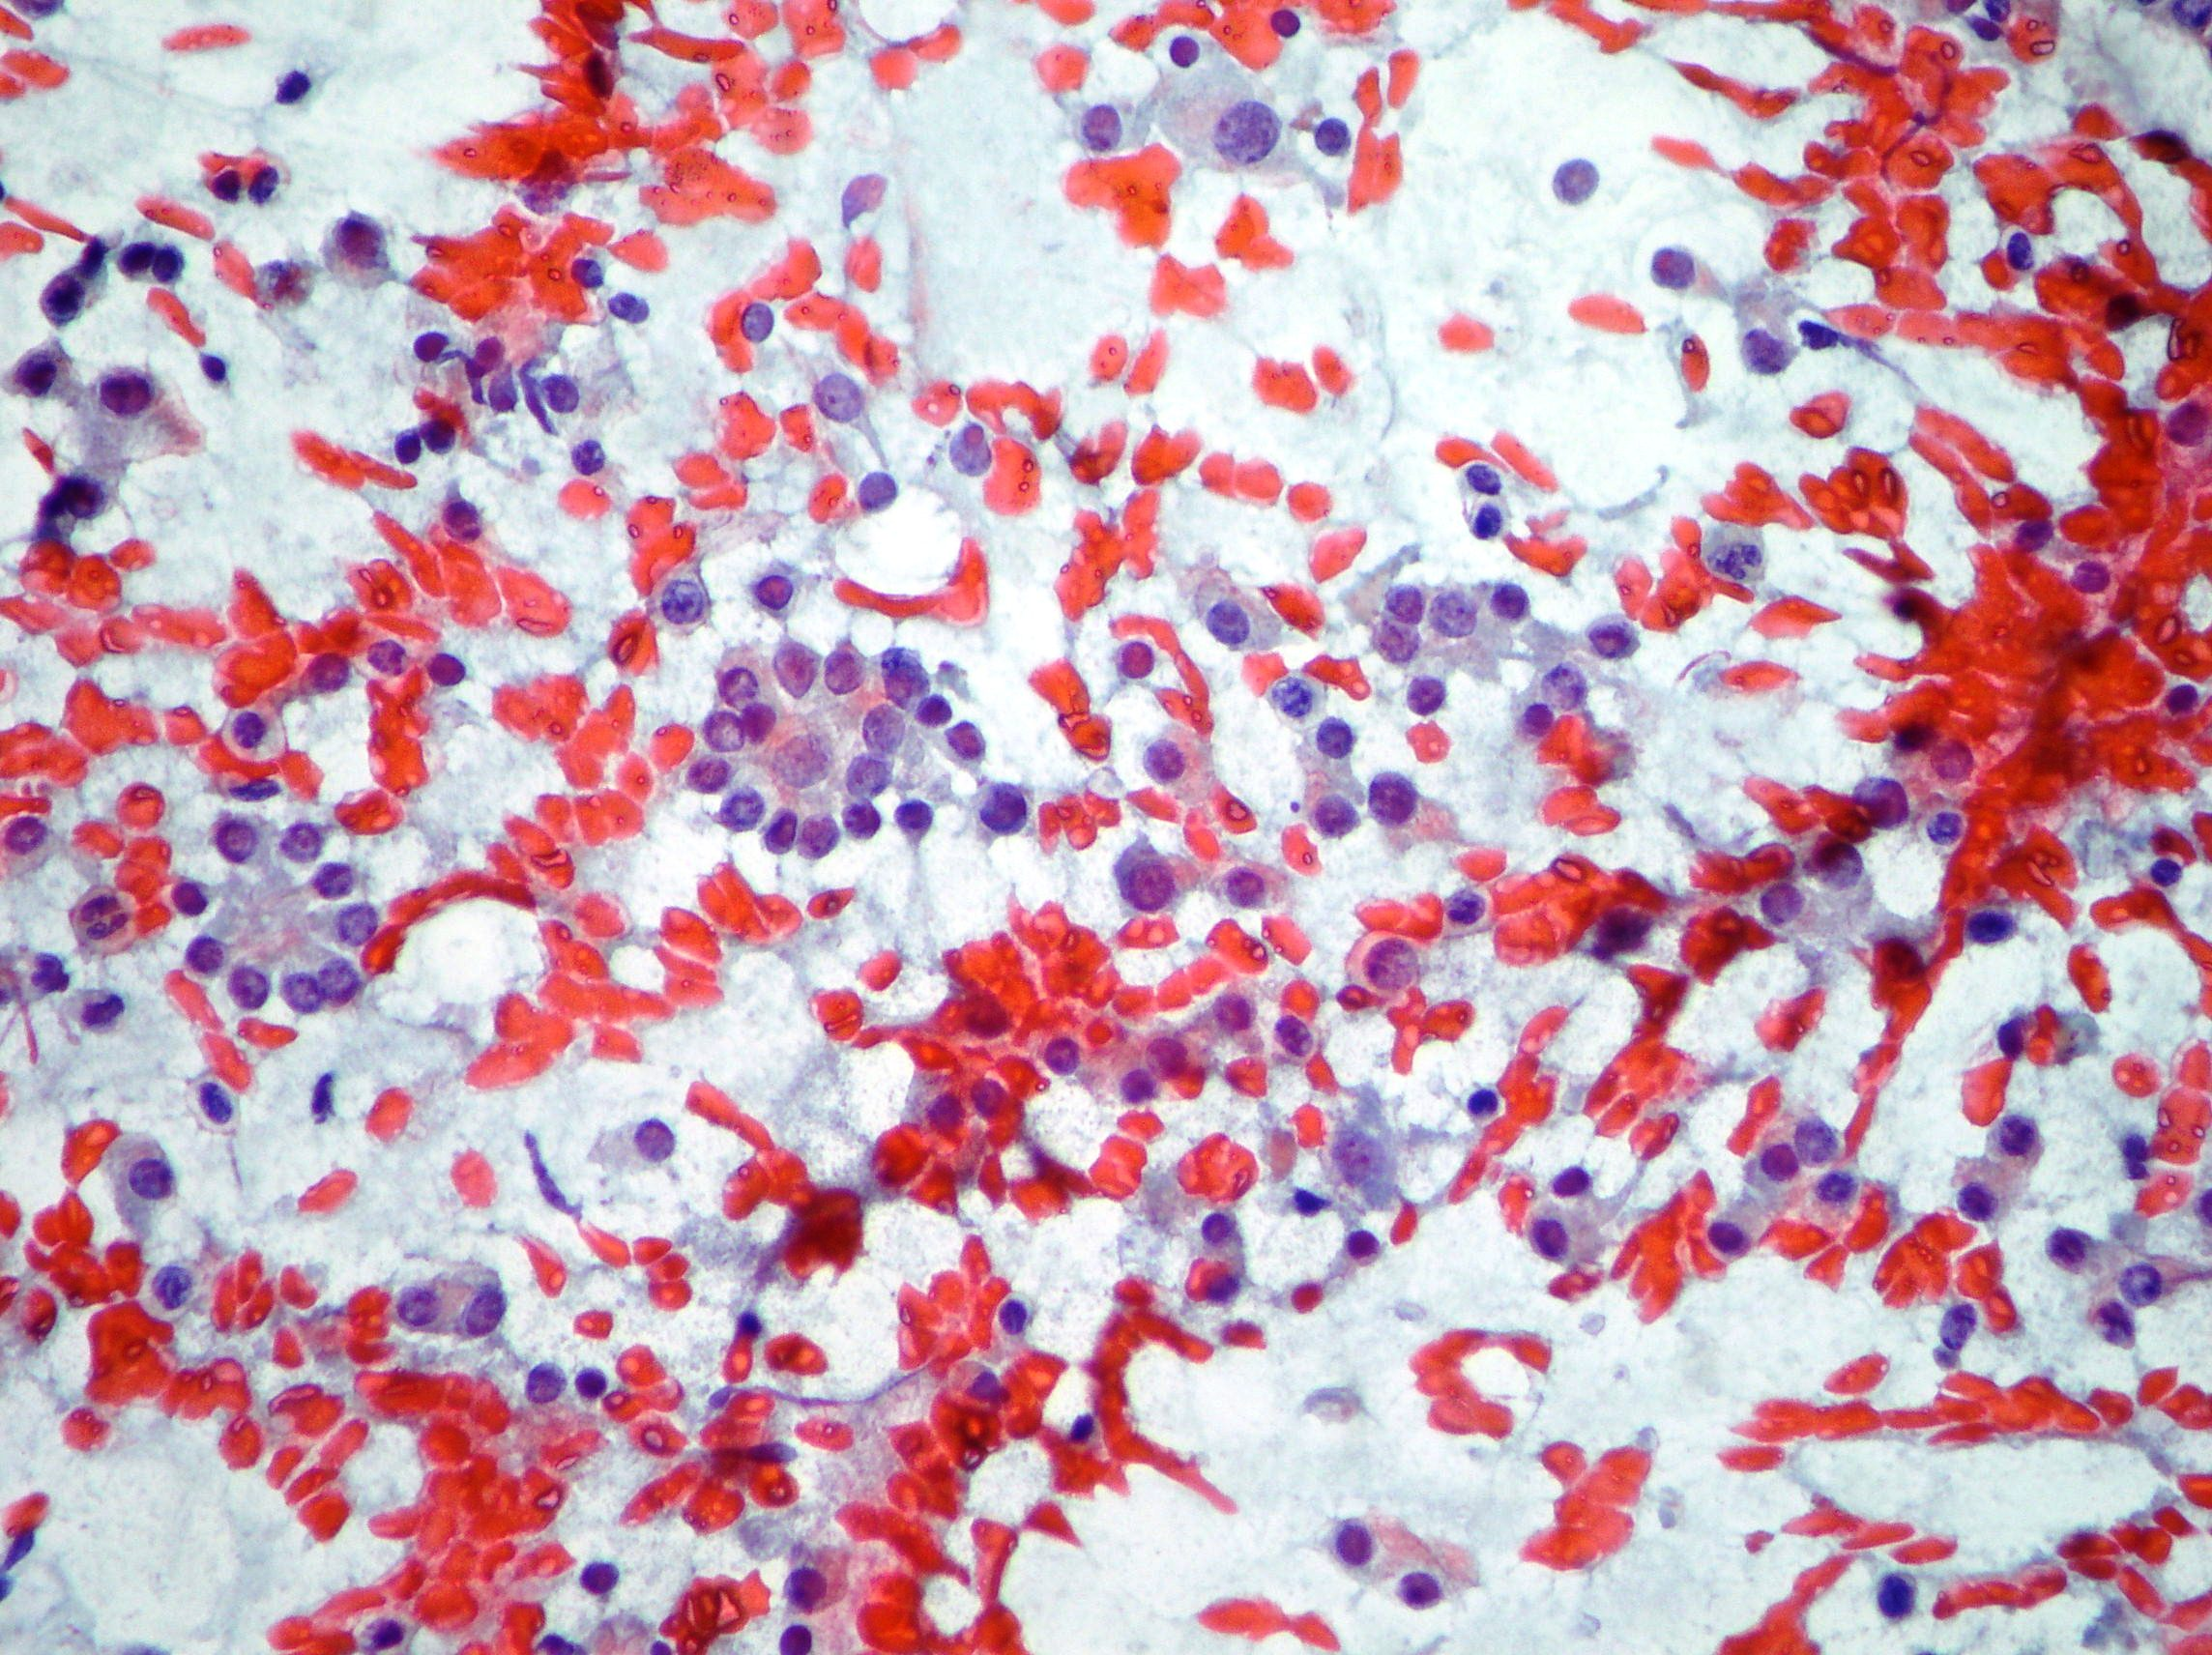 Follicular thyroid proliferation